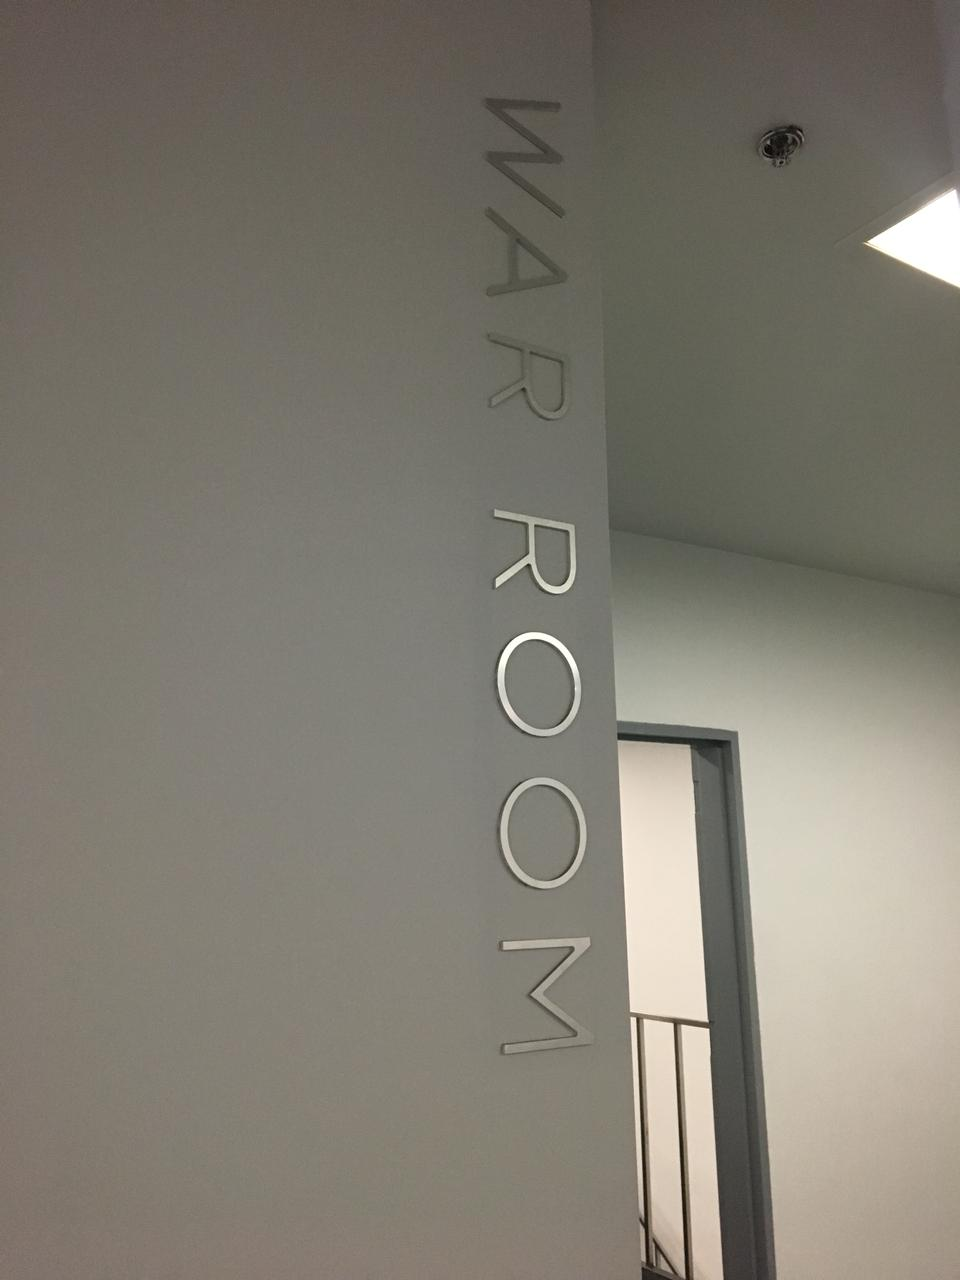 War room bei Tesla